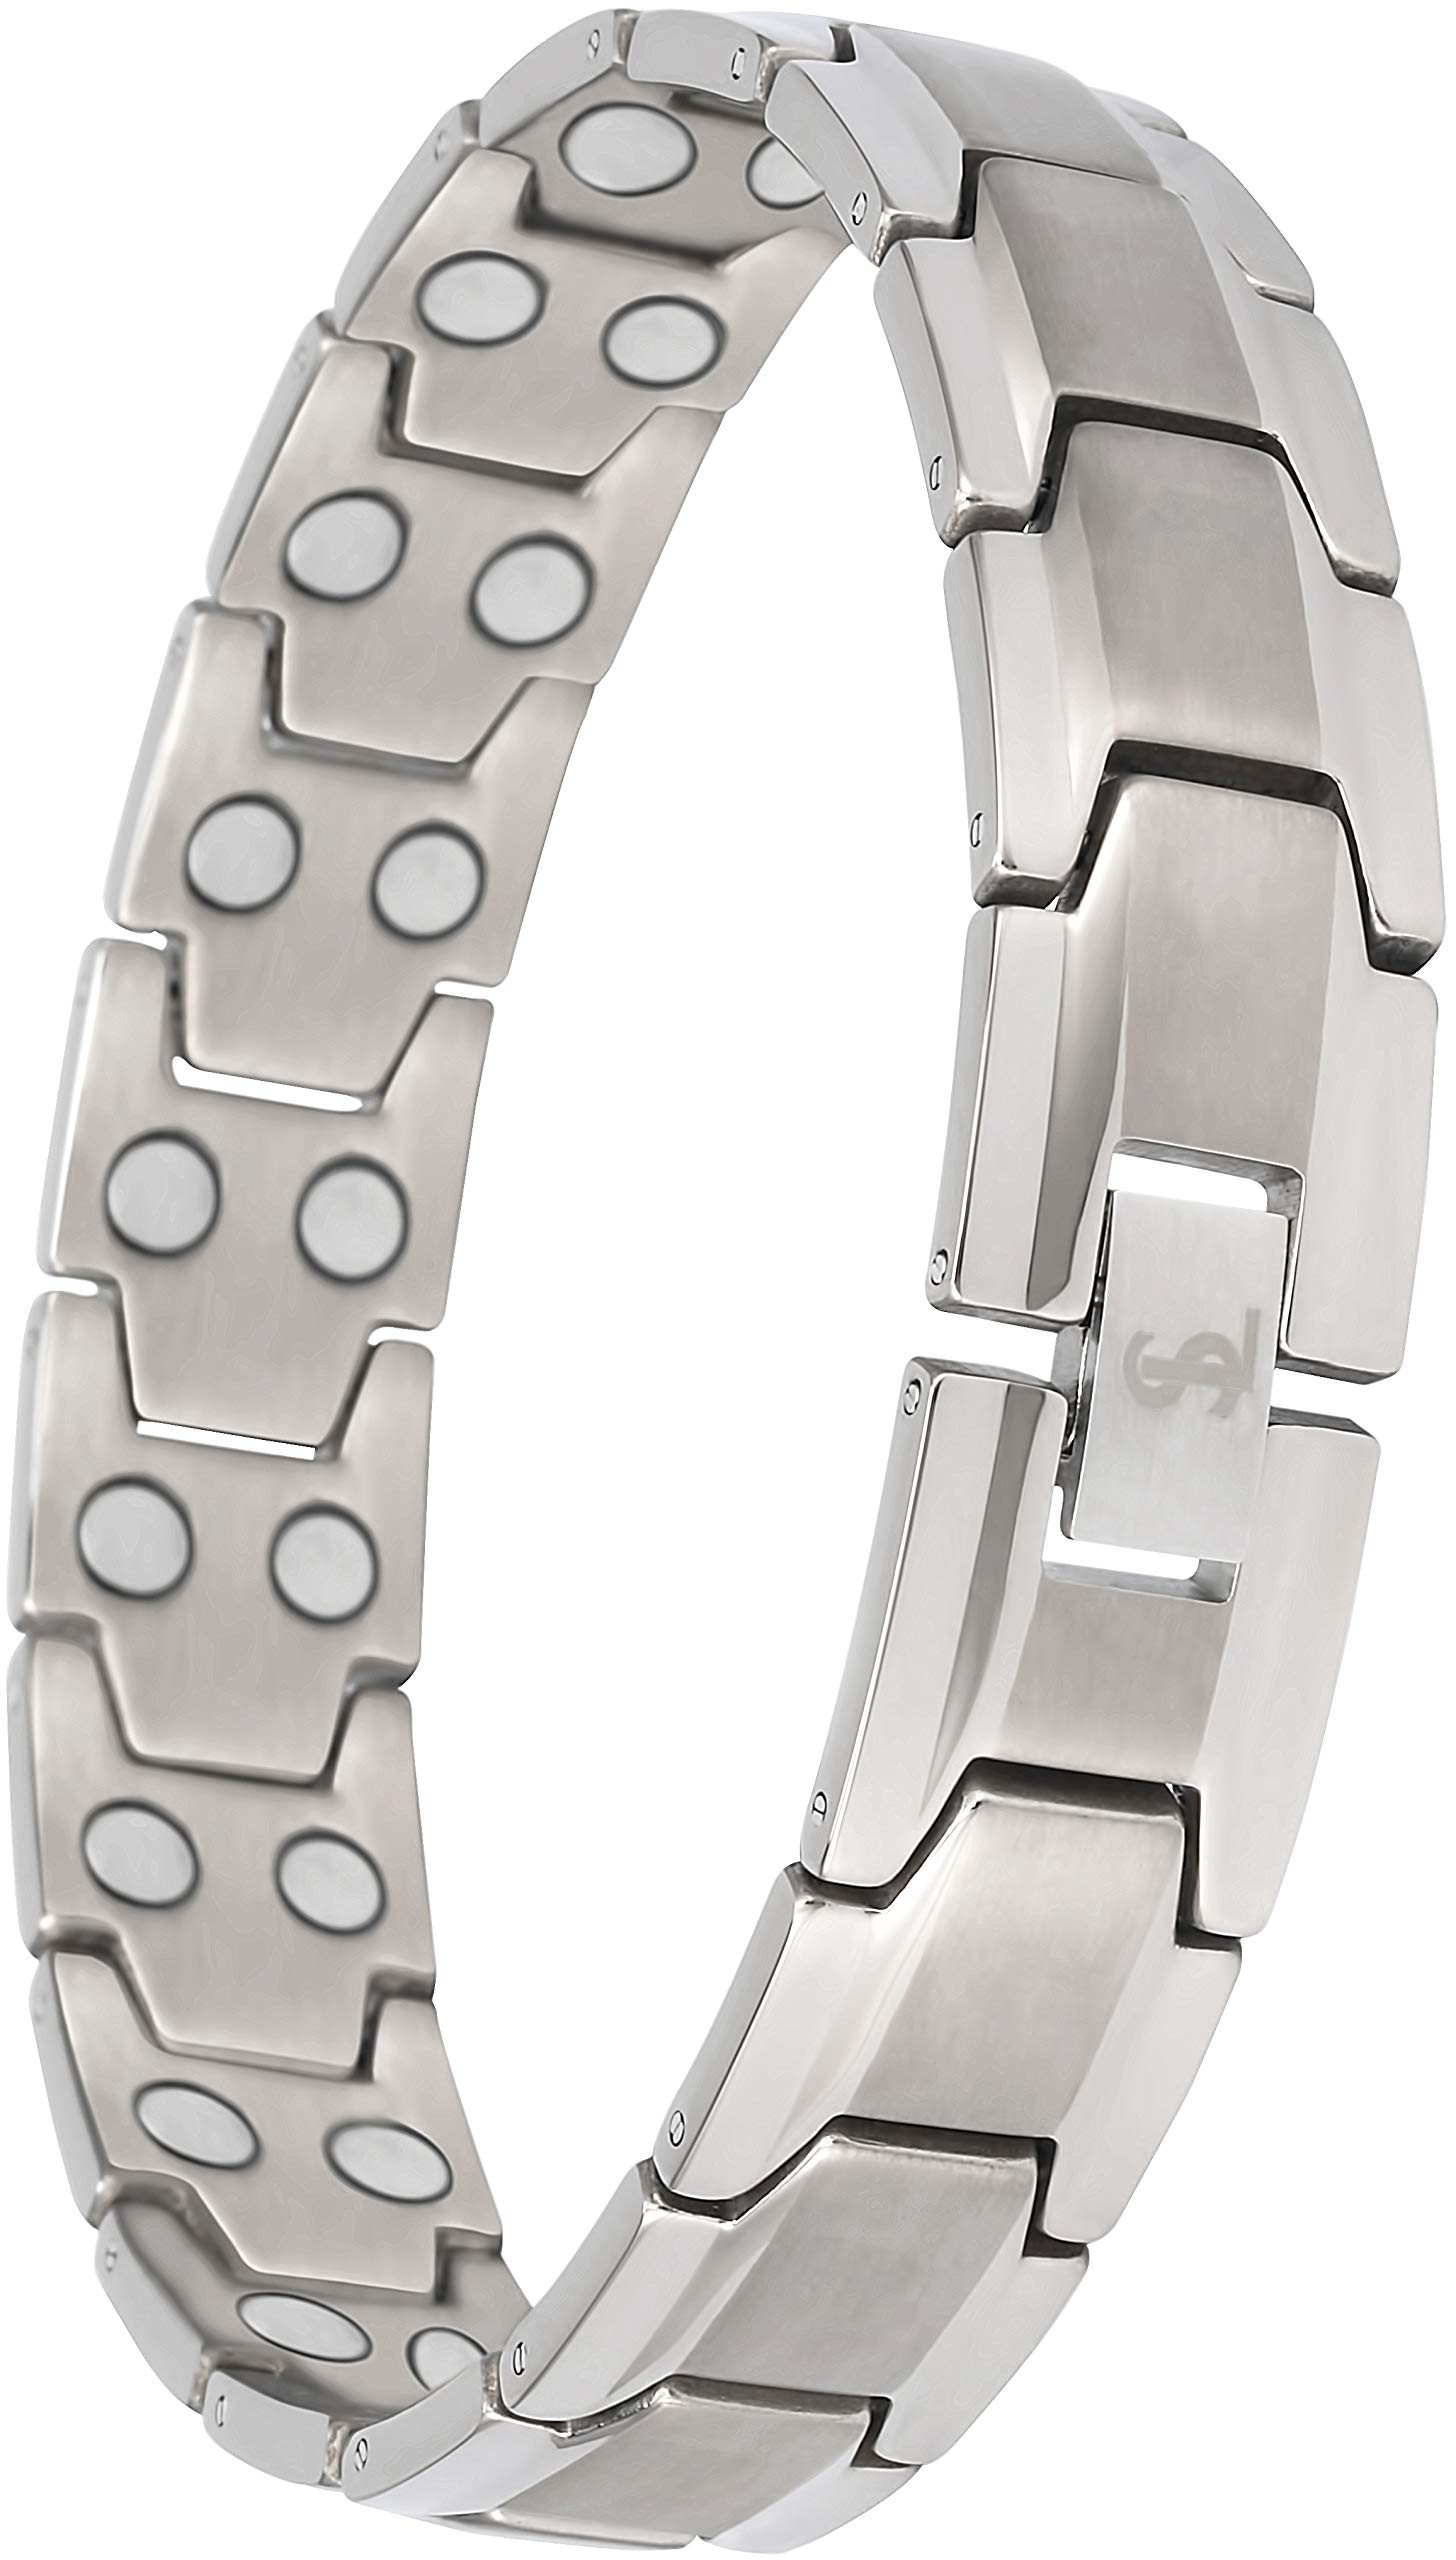 Elegant Men's Double Magnet Wide Titanium Magnetic Therapy Bracelet Pain Relief for Arthritis and Carpal Tunnel (Silver)